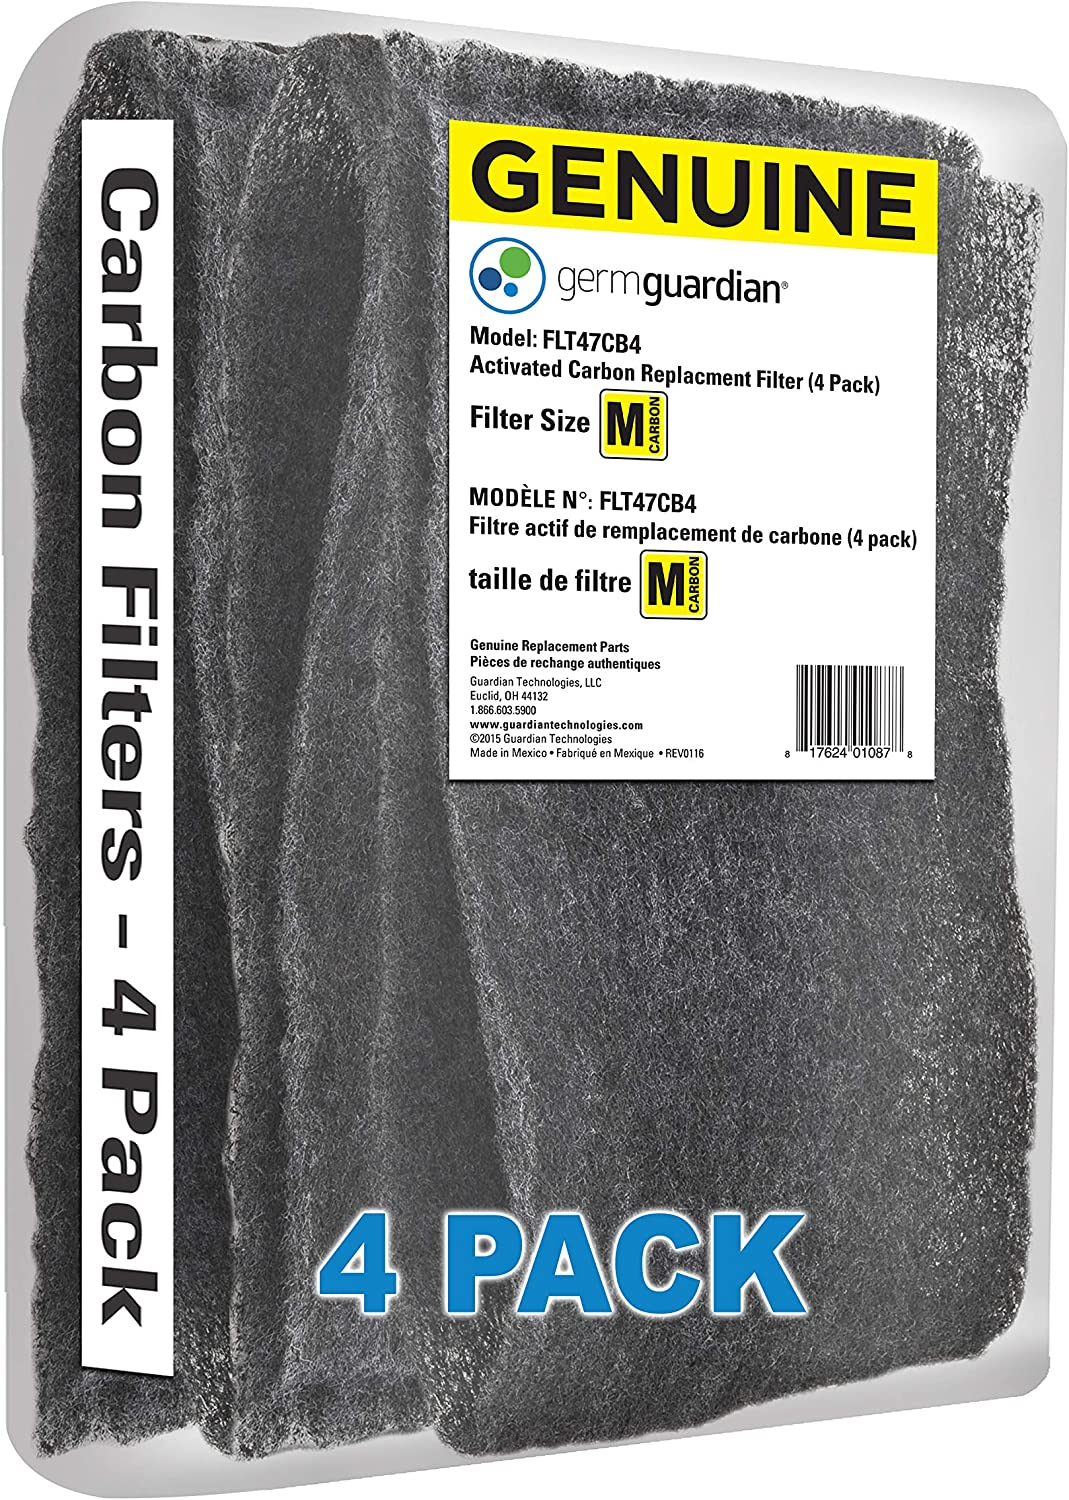 Guardian Technologies GermGuardian FLT47CB4 Carbon Filter Replacements for Germ Guadian AC4700BDLX Air Purifier, 4-Pack, 4 Pack